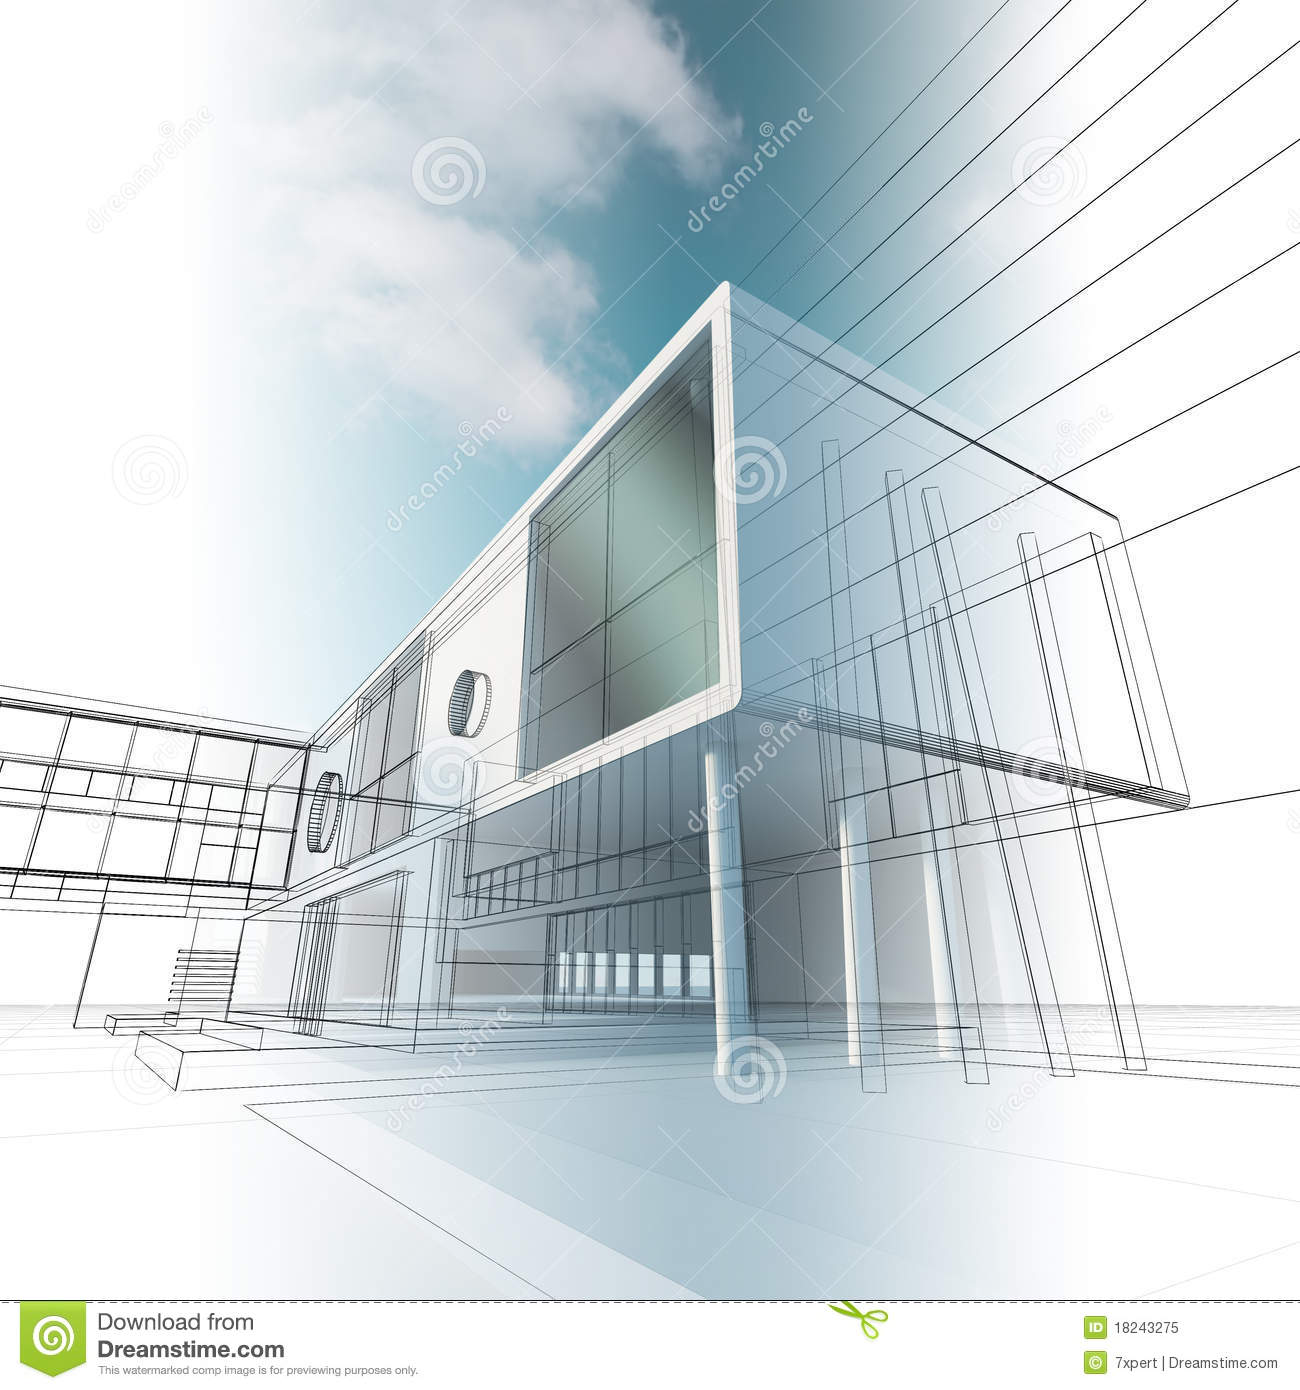 Building concept drawing stock illustration illustration Concept buildings